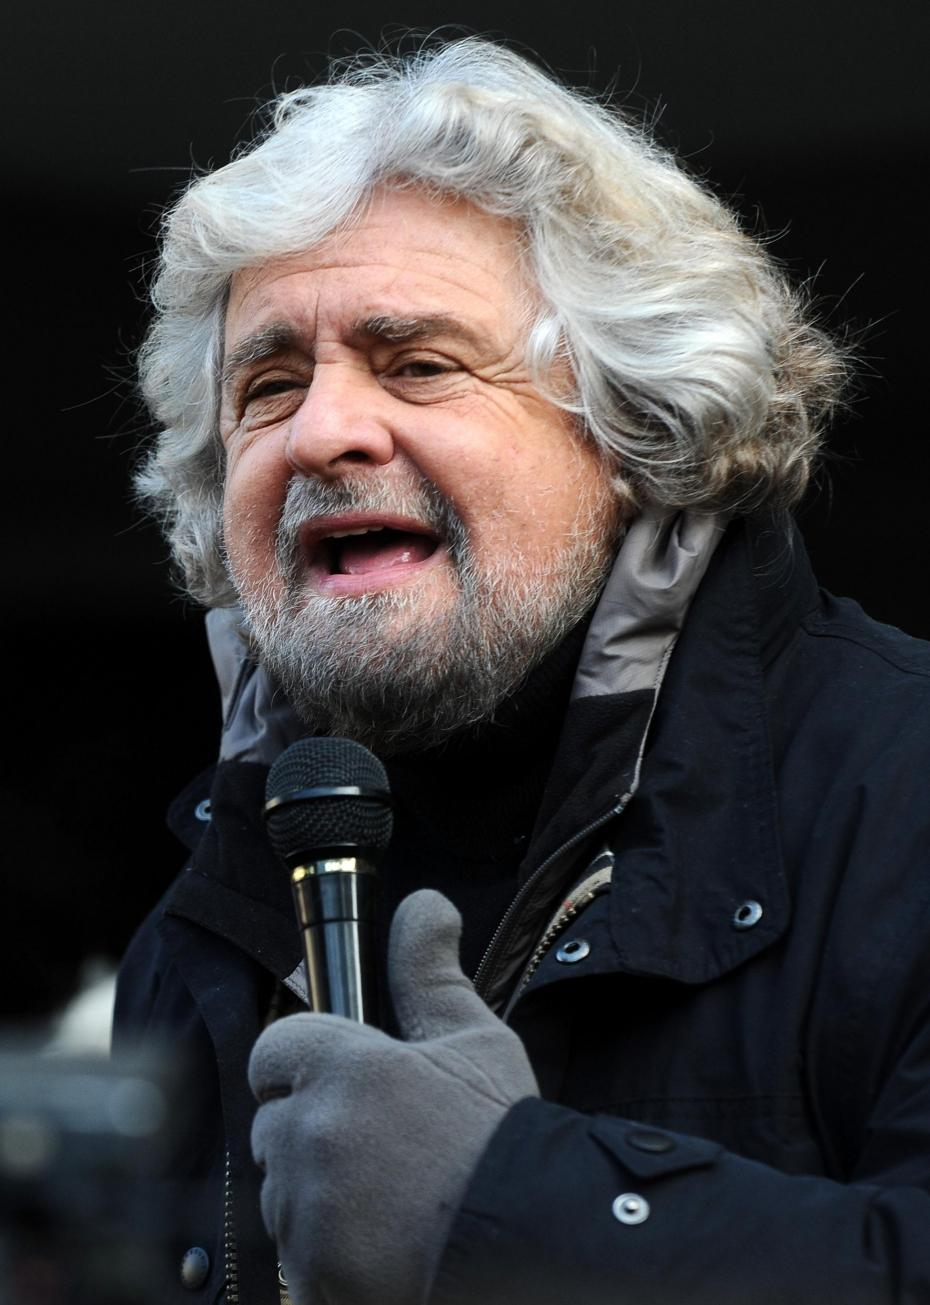 beppe grillo image 5754 article ajust 930